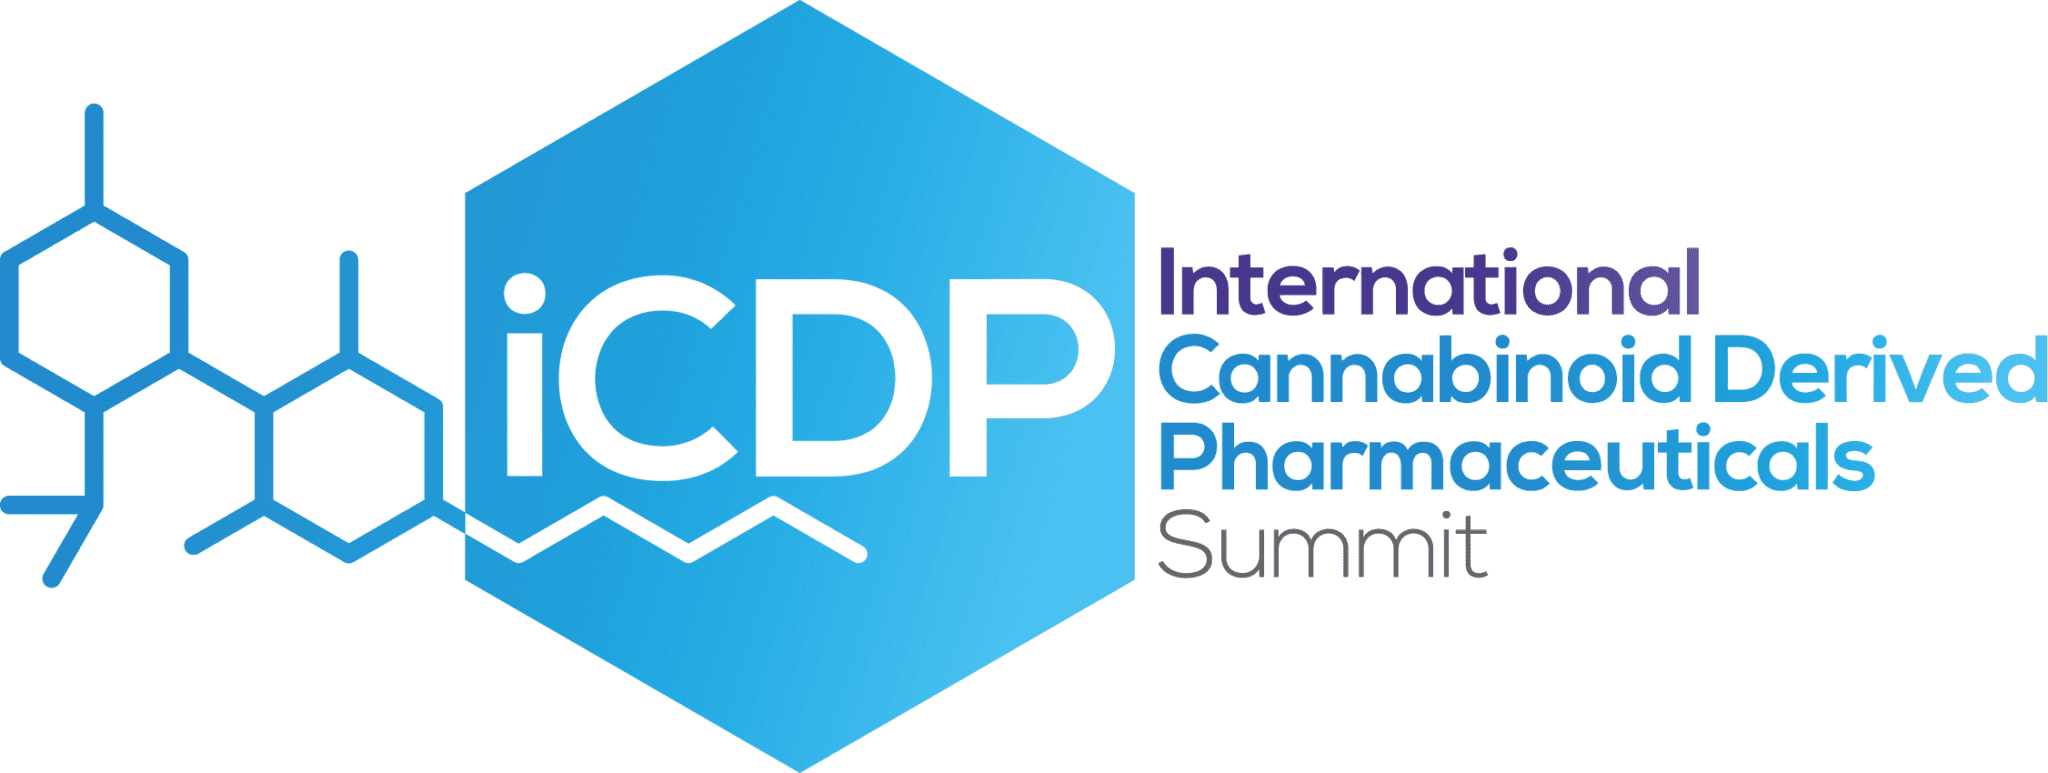 International-Cannabinoid-Derived-Pharmaceuticals-Summit